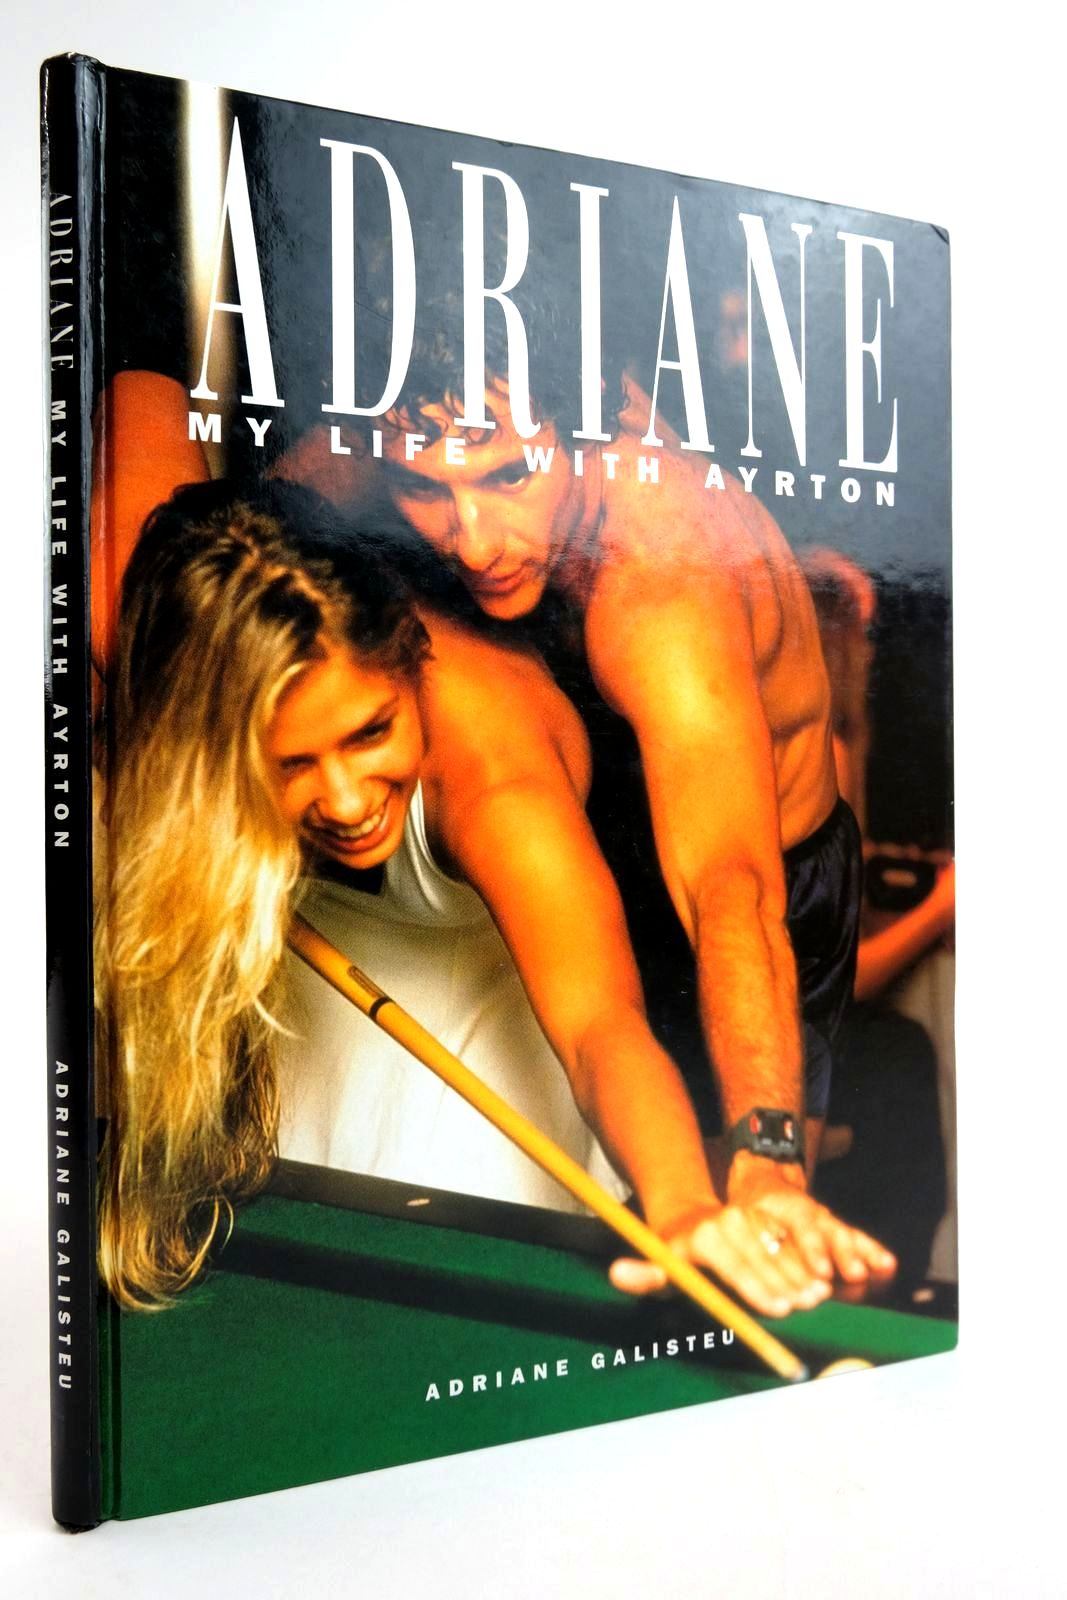 Photo of ADRIANE MY LIFE WITH AYRTON written by Galisteu, Adriane published by APA Publications (STOCK CODE: 2135003)  for sale by Stella & Rose's Books